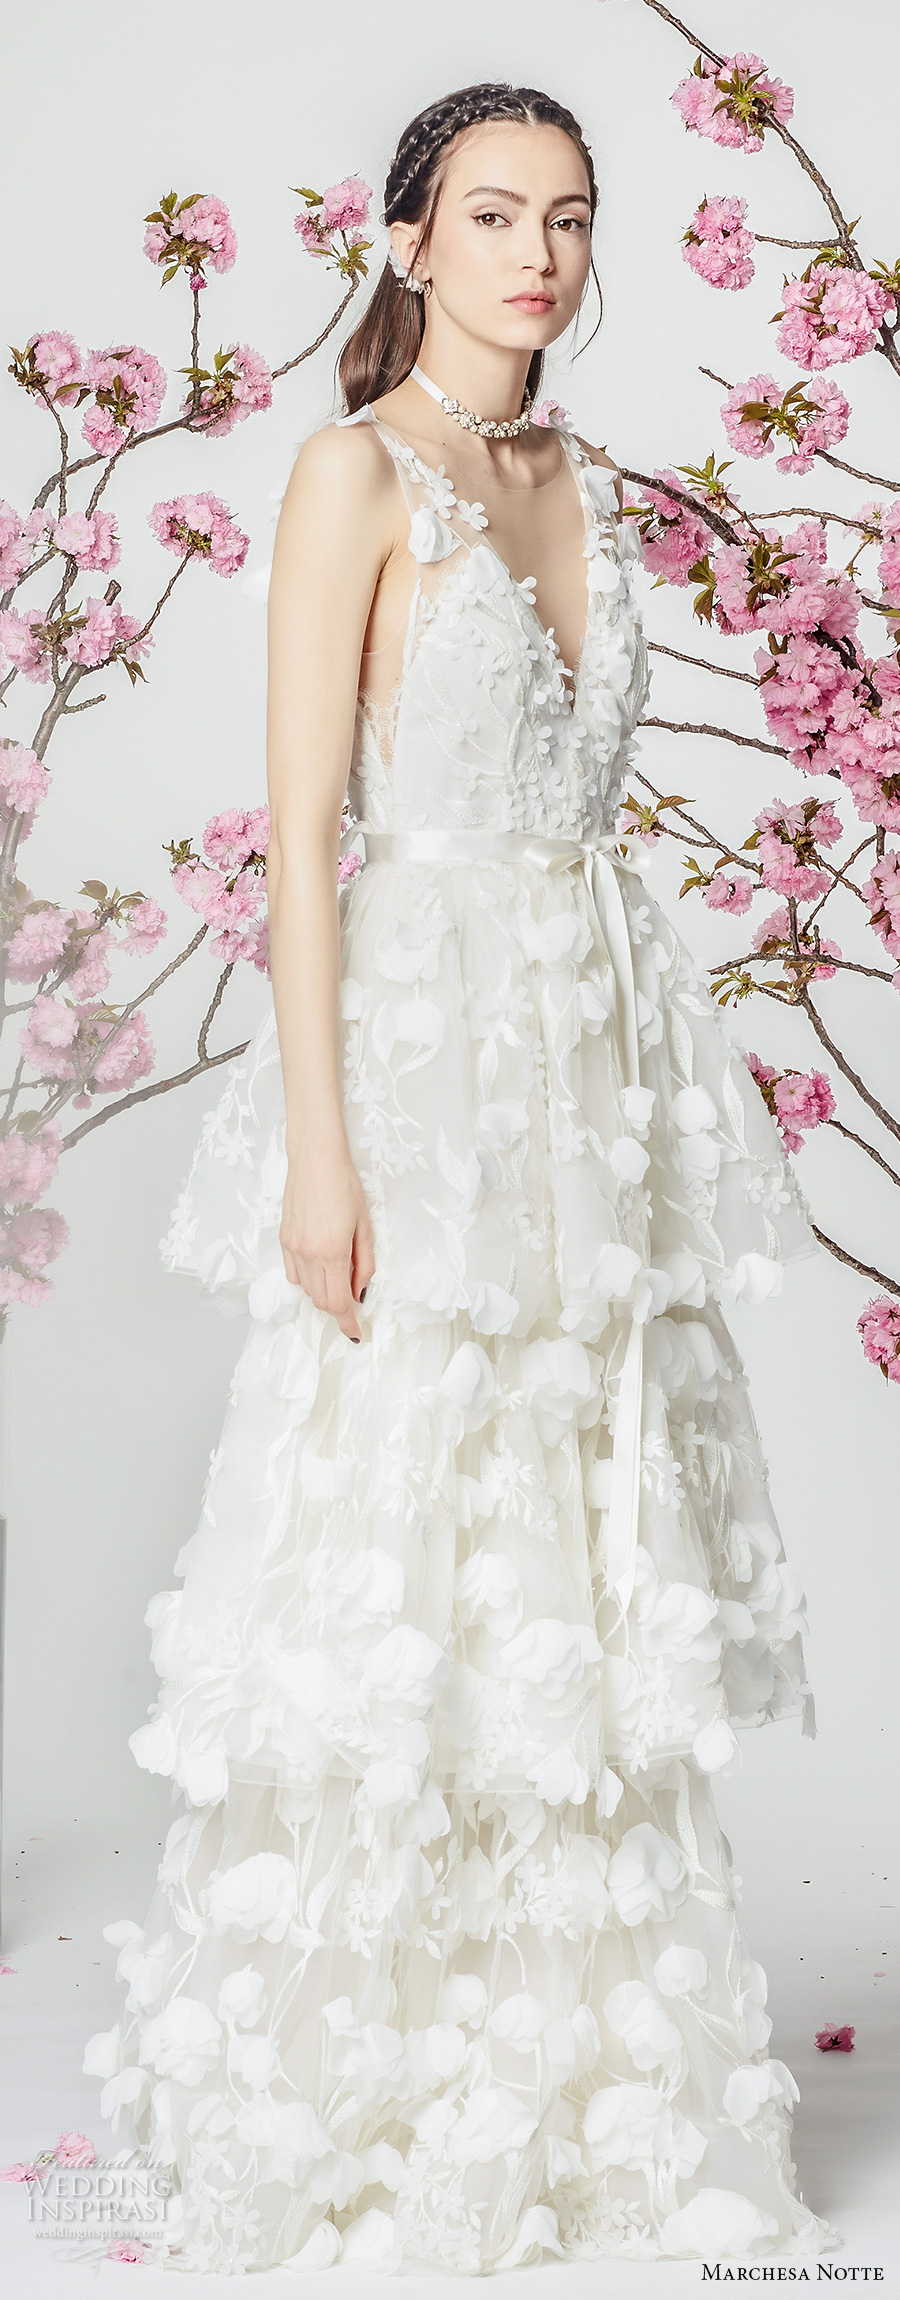 Marchesa Notte Spring 2018 Wedding Dresses